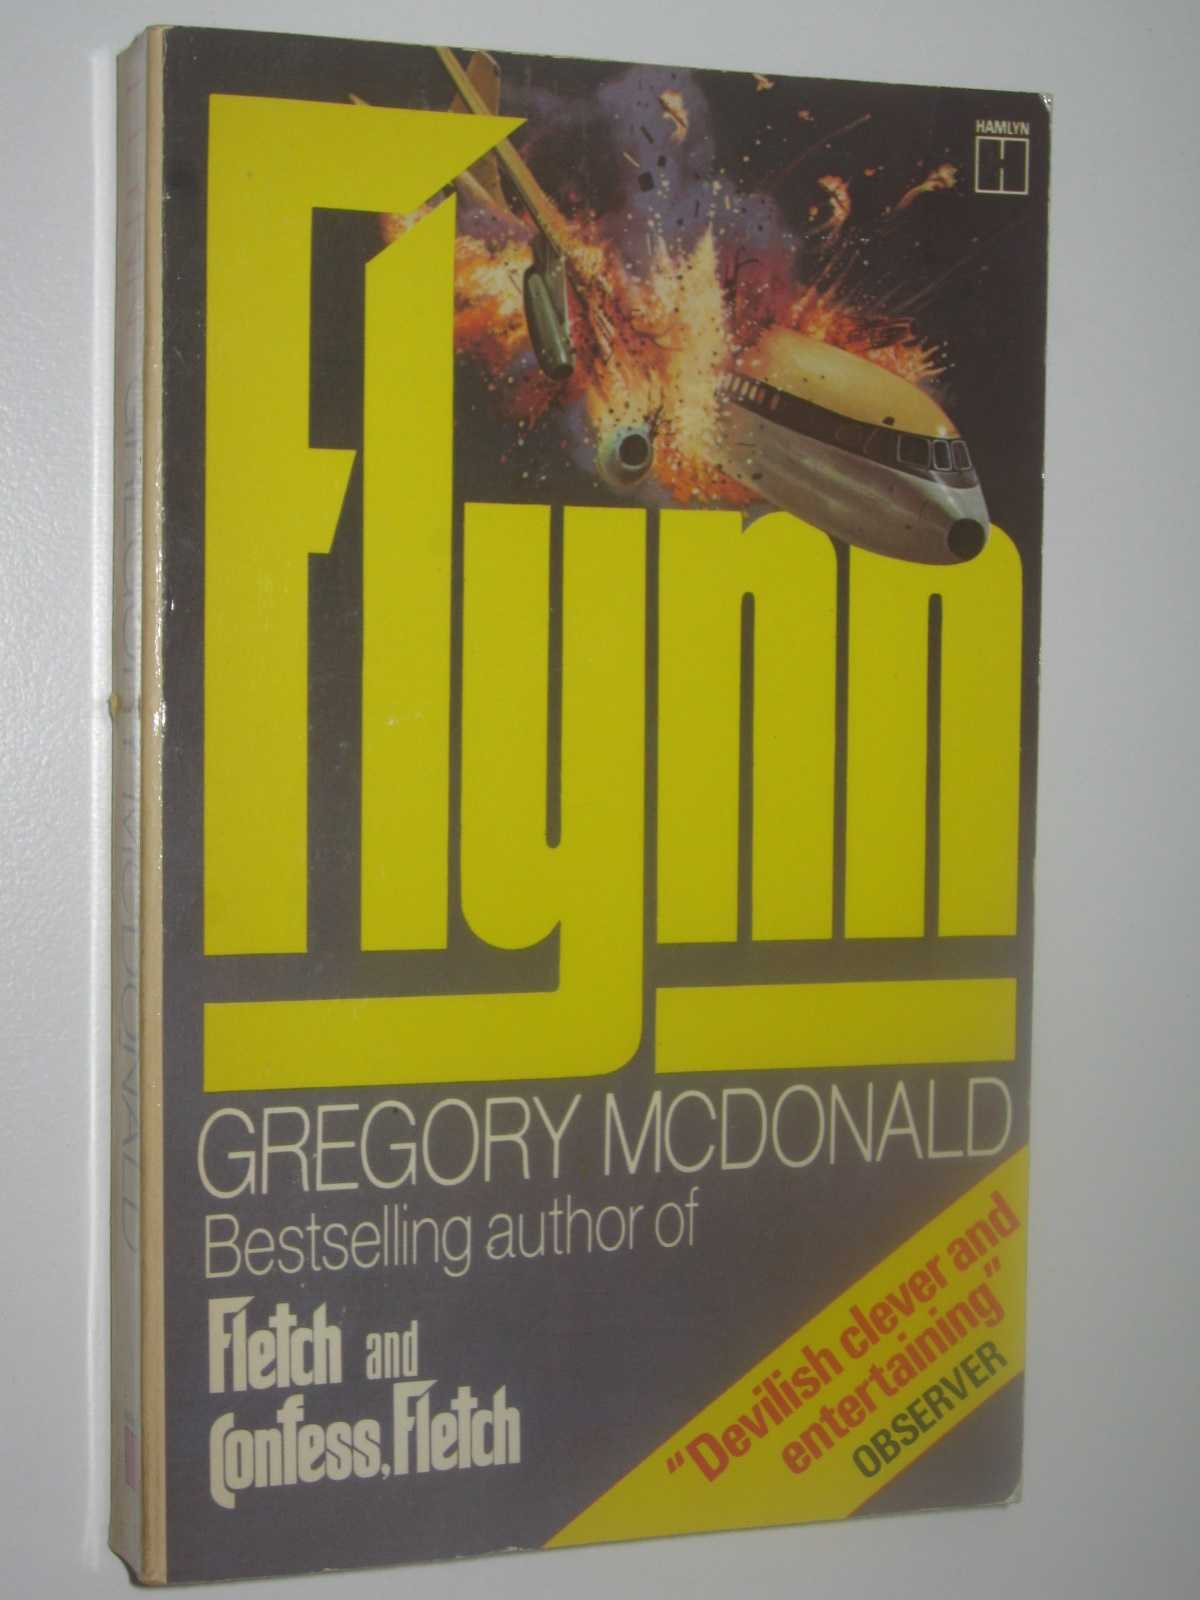 Flynn - Flynn Series #1, Mcdonald, Gregory